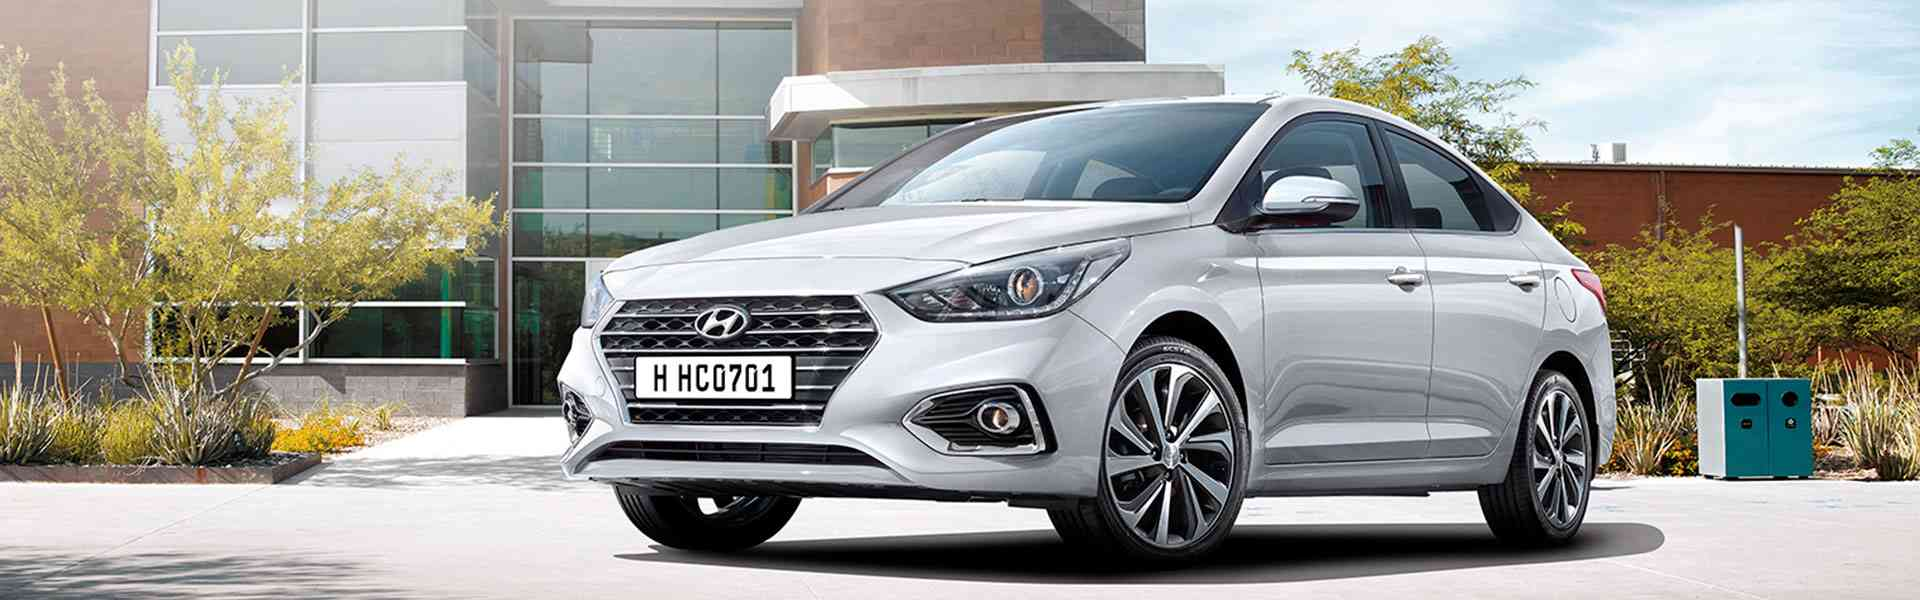 Hyundai Accent New - обзор